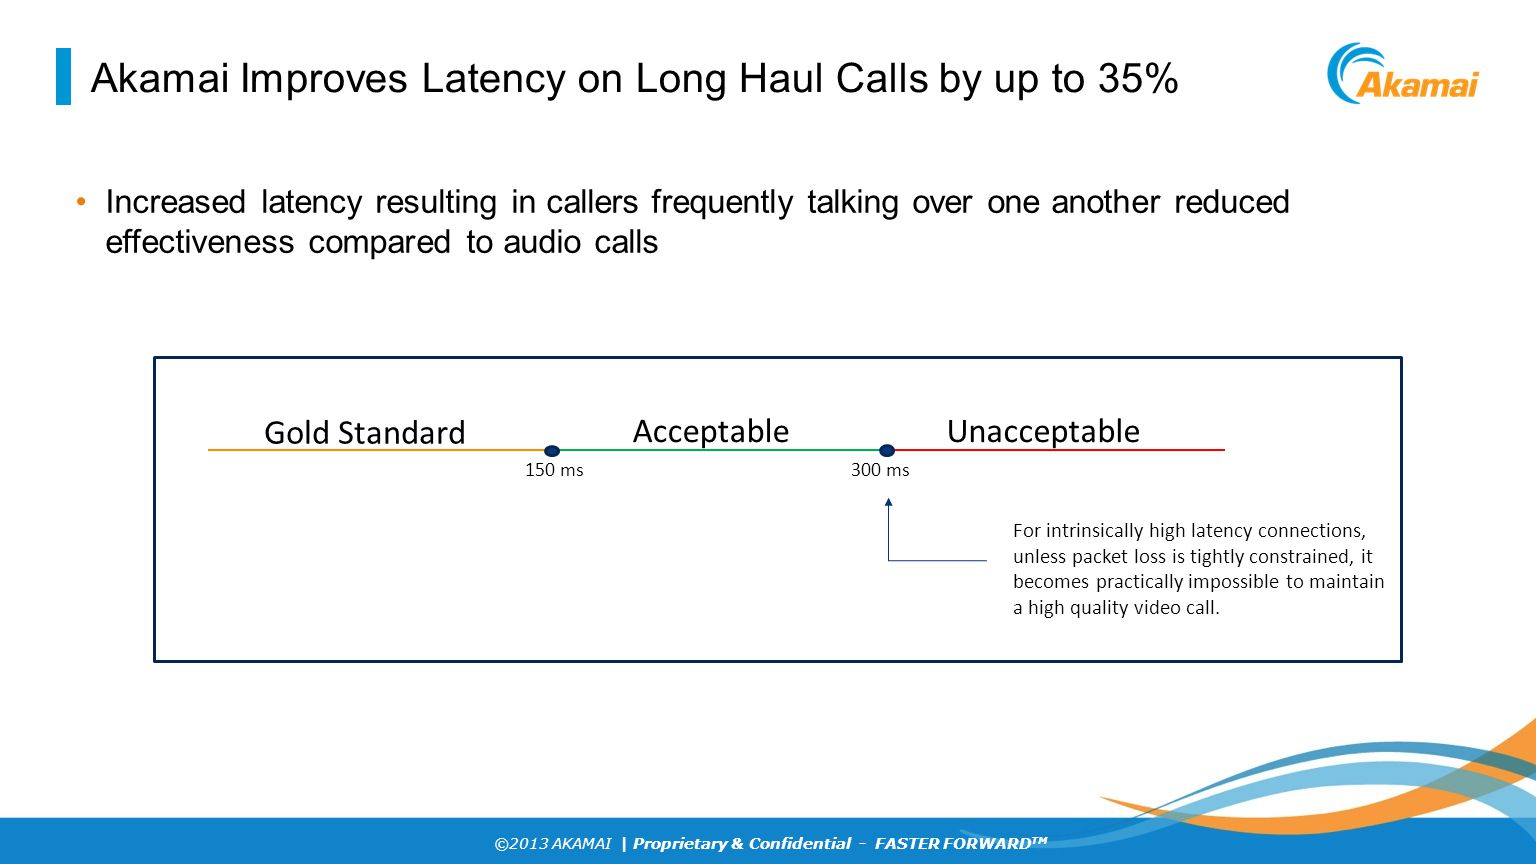 ©2013 AKAMAI | Proprietary & Confidential - FASTER FORWARD TM Akamai Improves Latency on Long Haul Calls by up to 35% Key Increased latency resulting